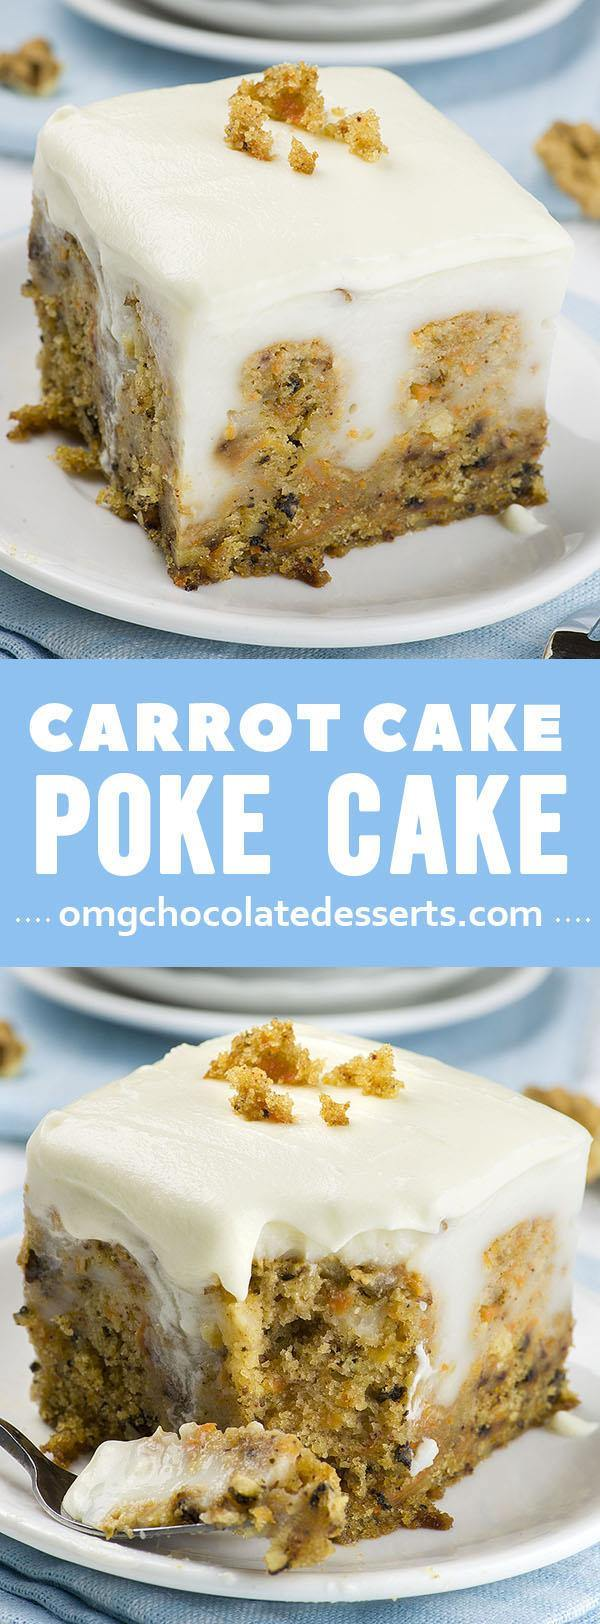 Carrot Cake Poke Cake   OMG Chocolate Desserts Carrot Cake Cheesecake      If you are looking for new and fun Easter ideas   this easy dessert recipe for